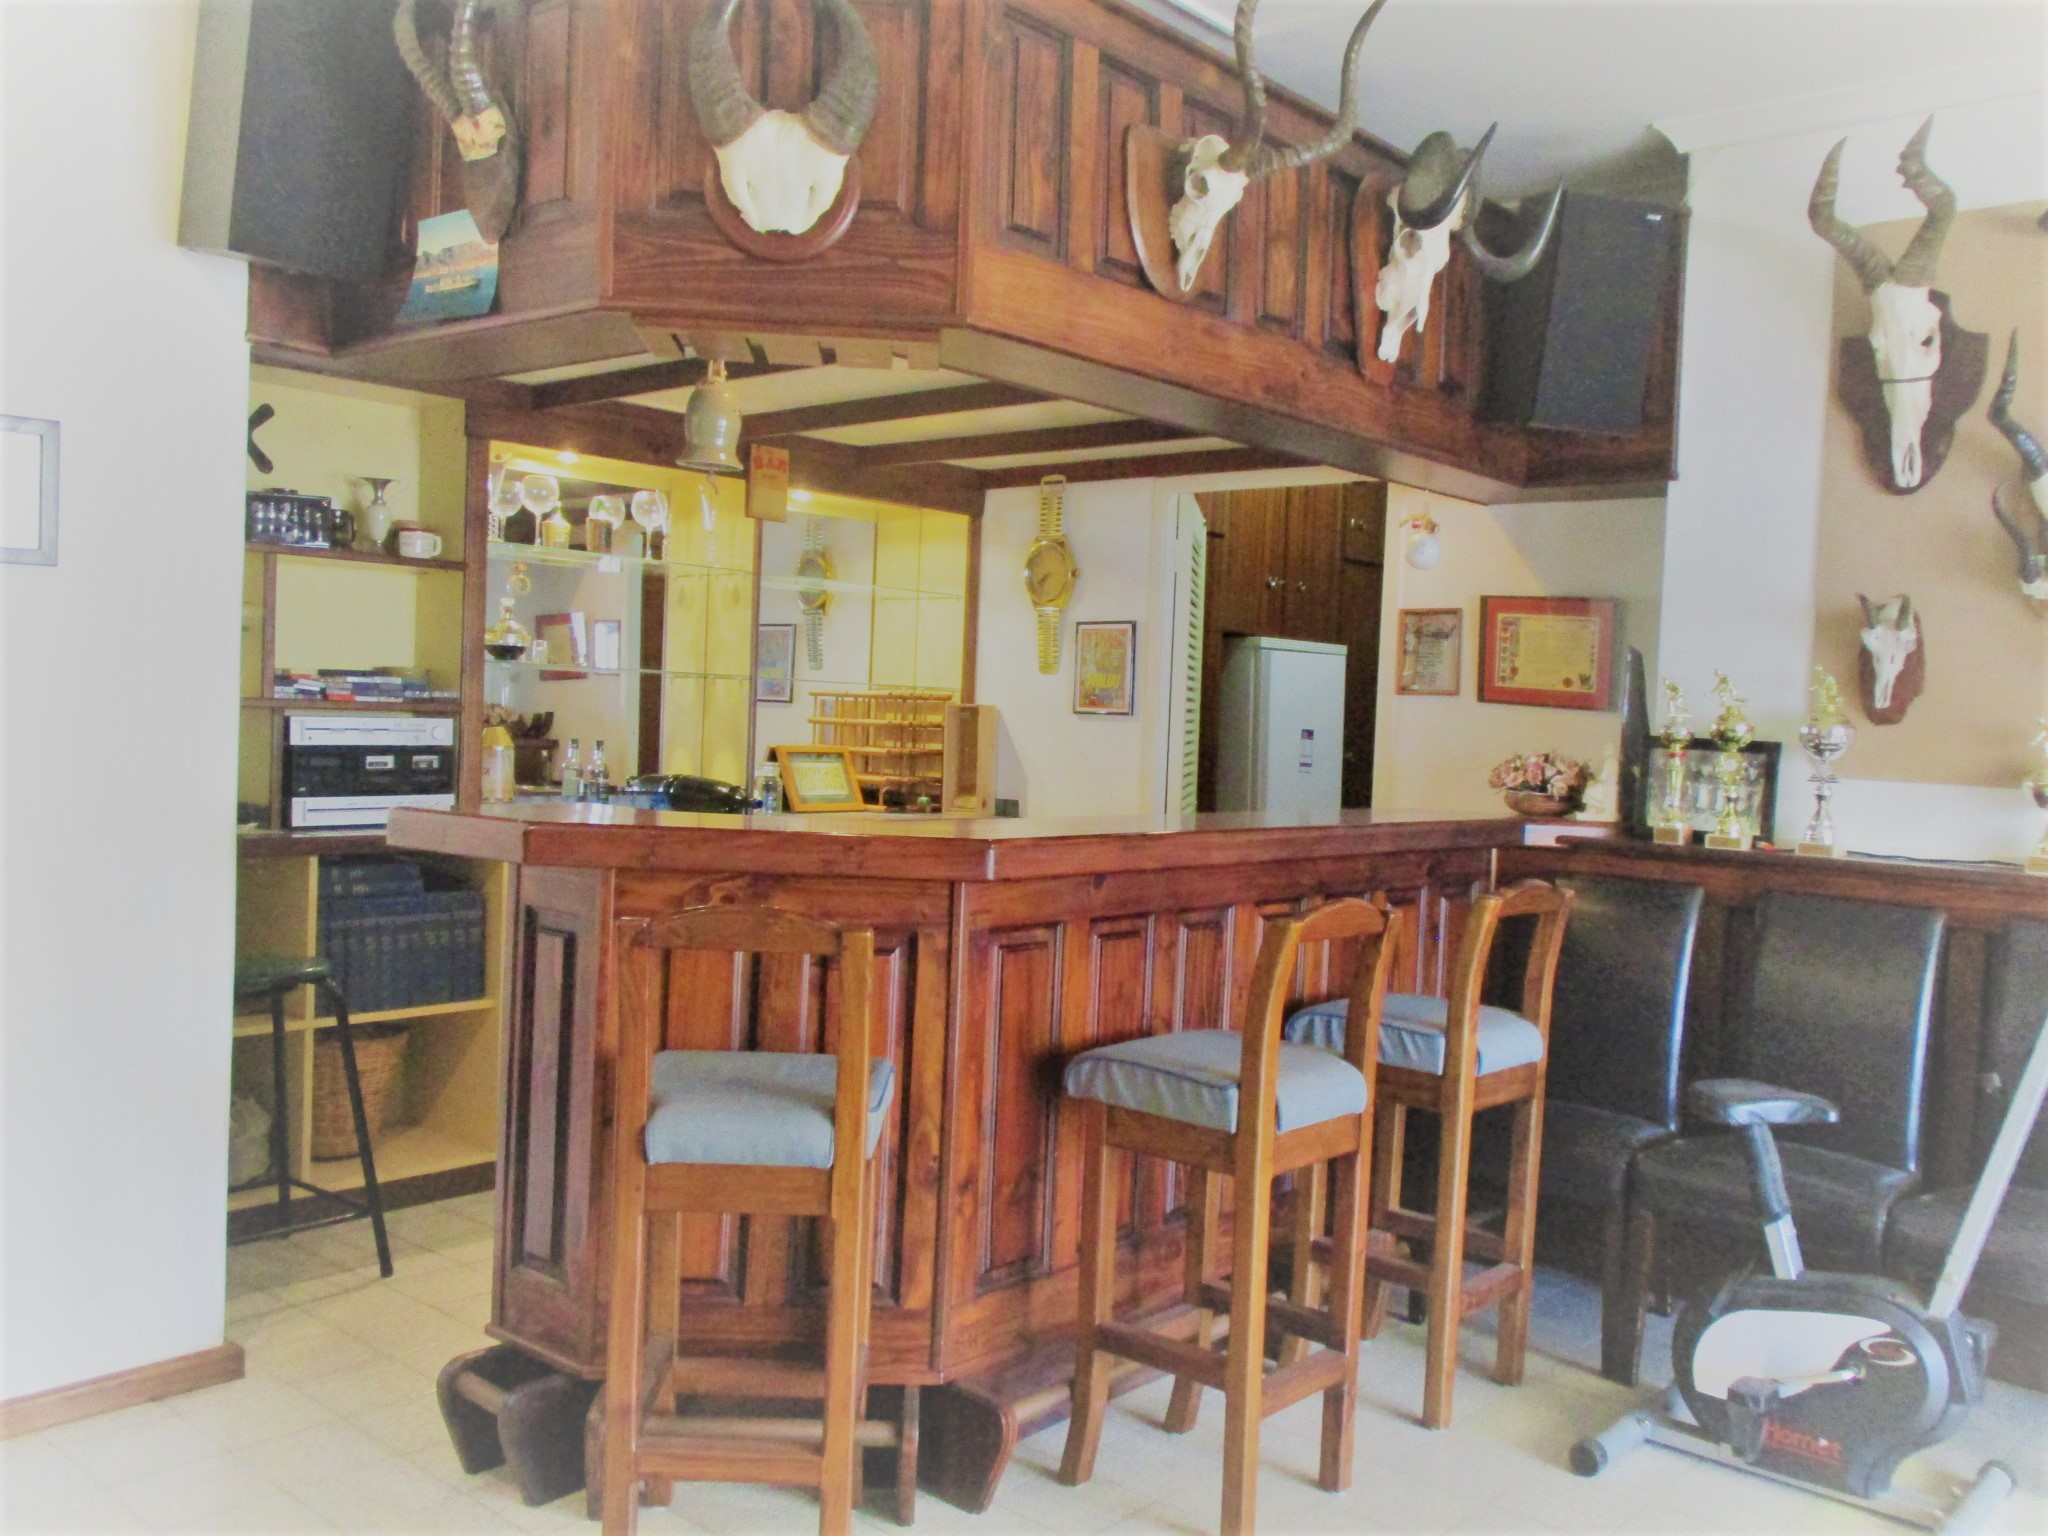 House For Sale In Milnerton Western Cape R 3700000